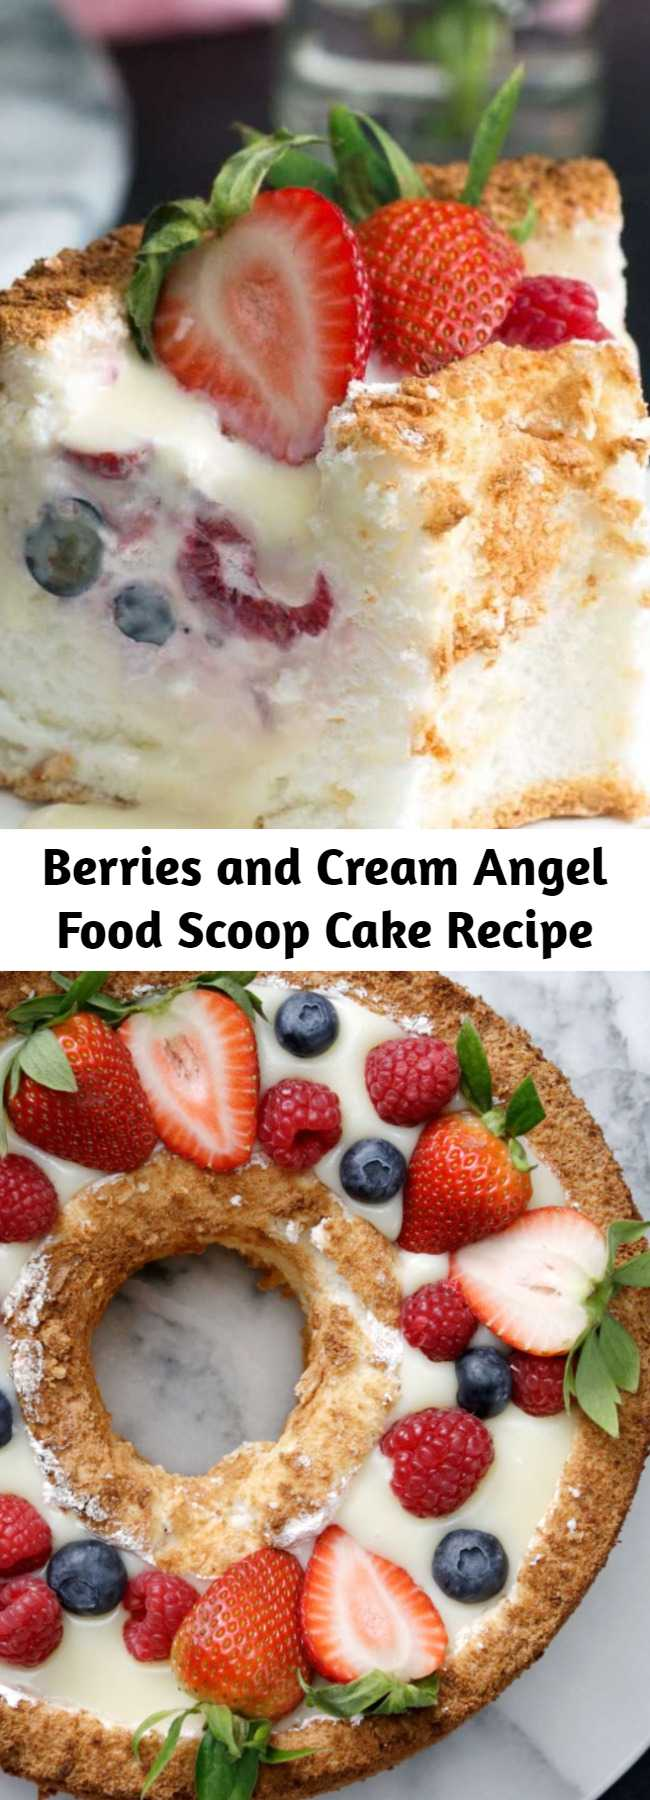 Berries and Cream Angel Food Scoop Cake Recipe - Cake is for life, not just birthdays.